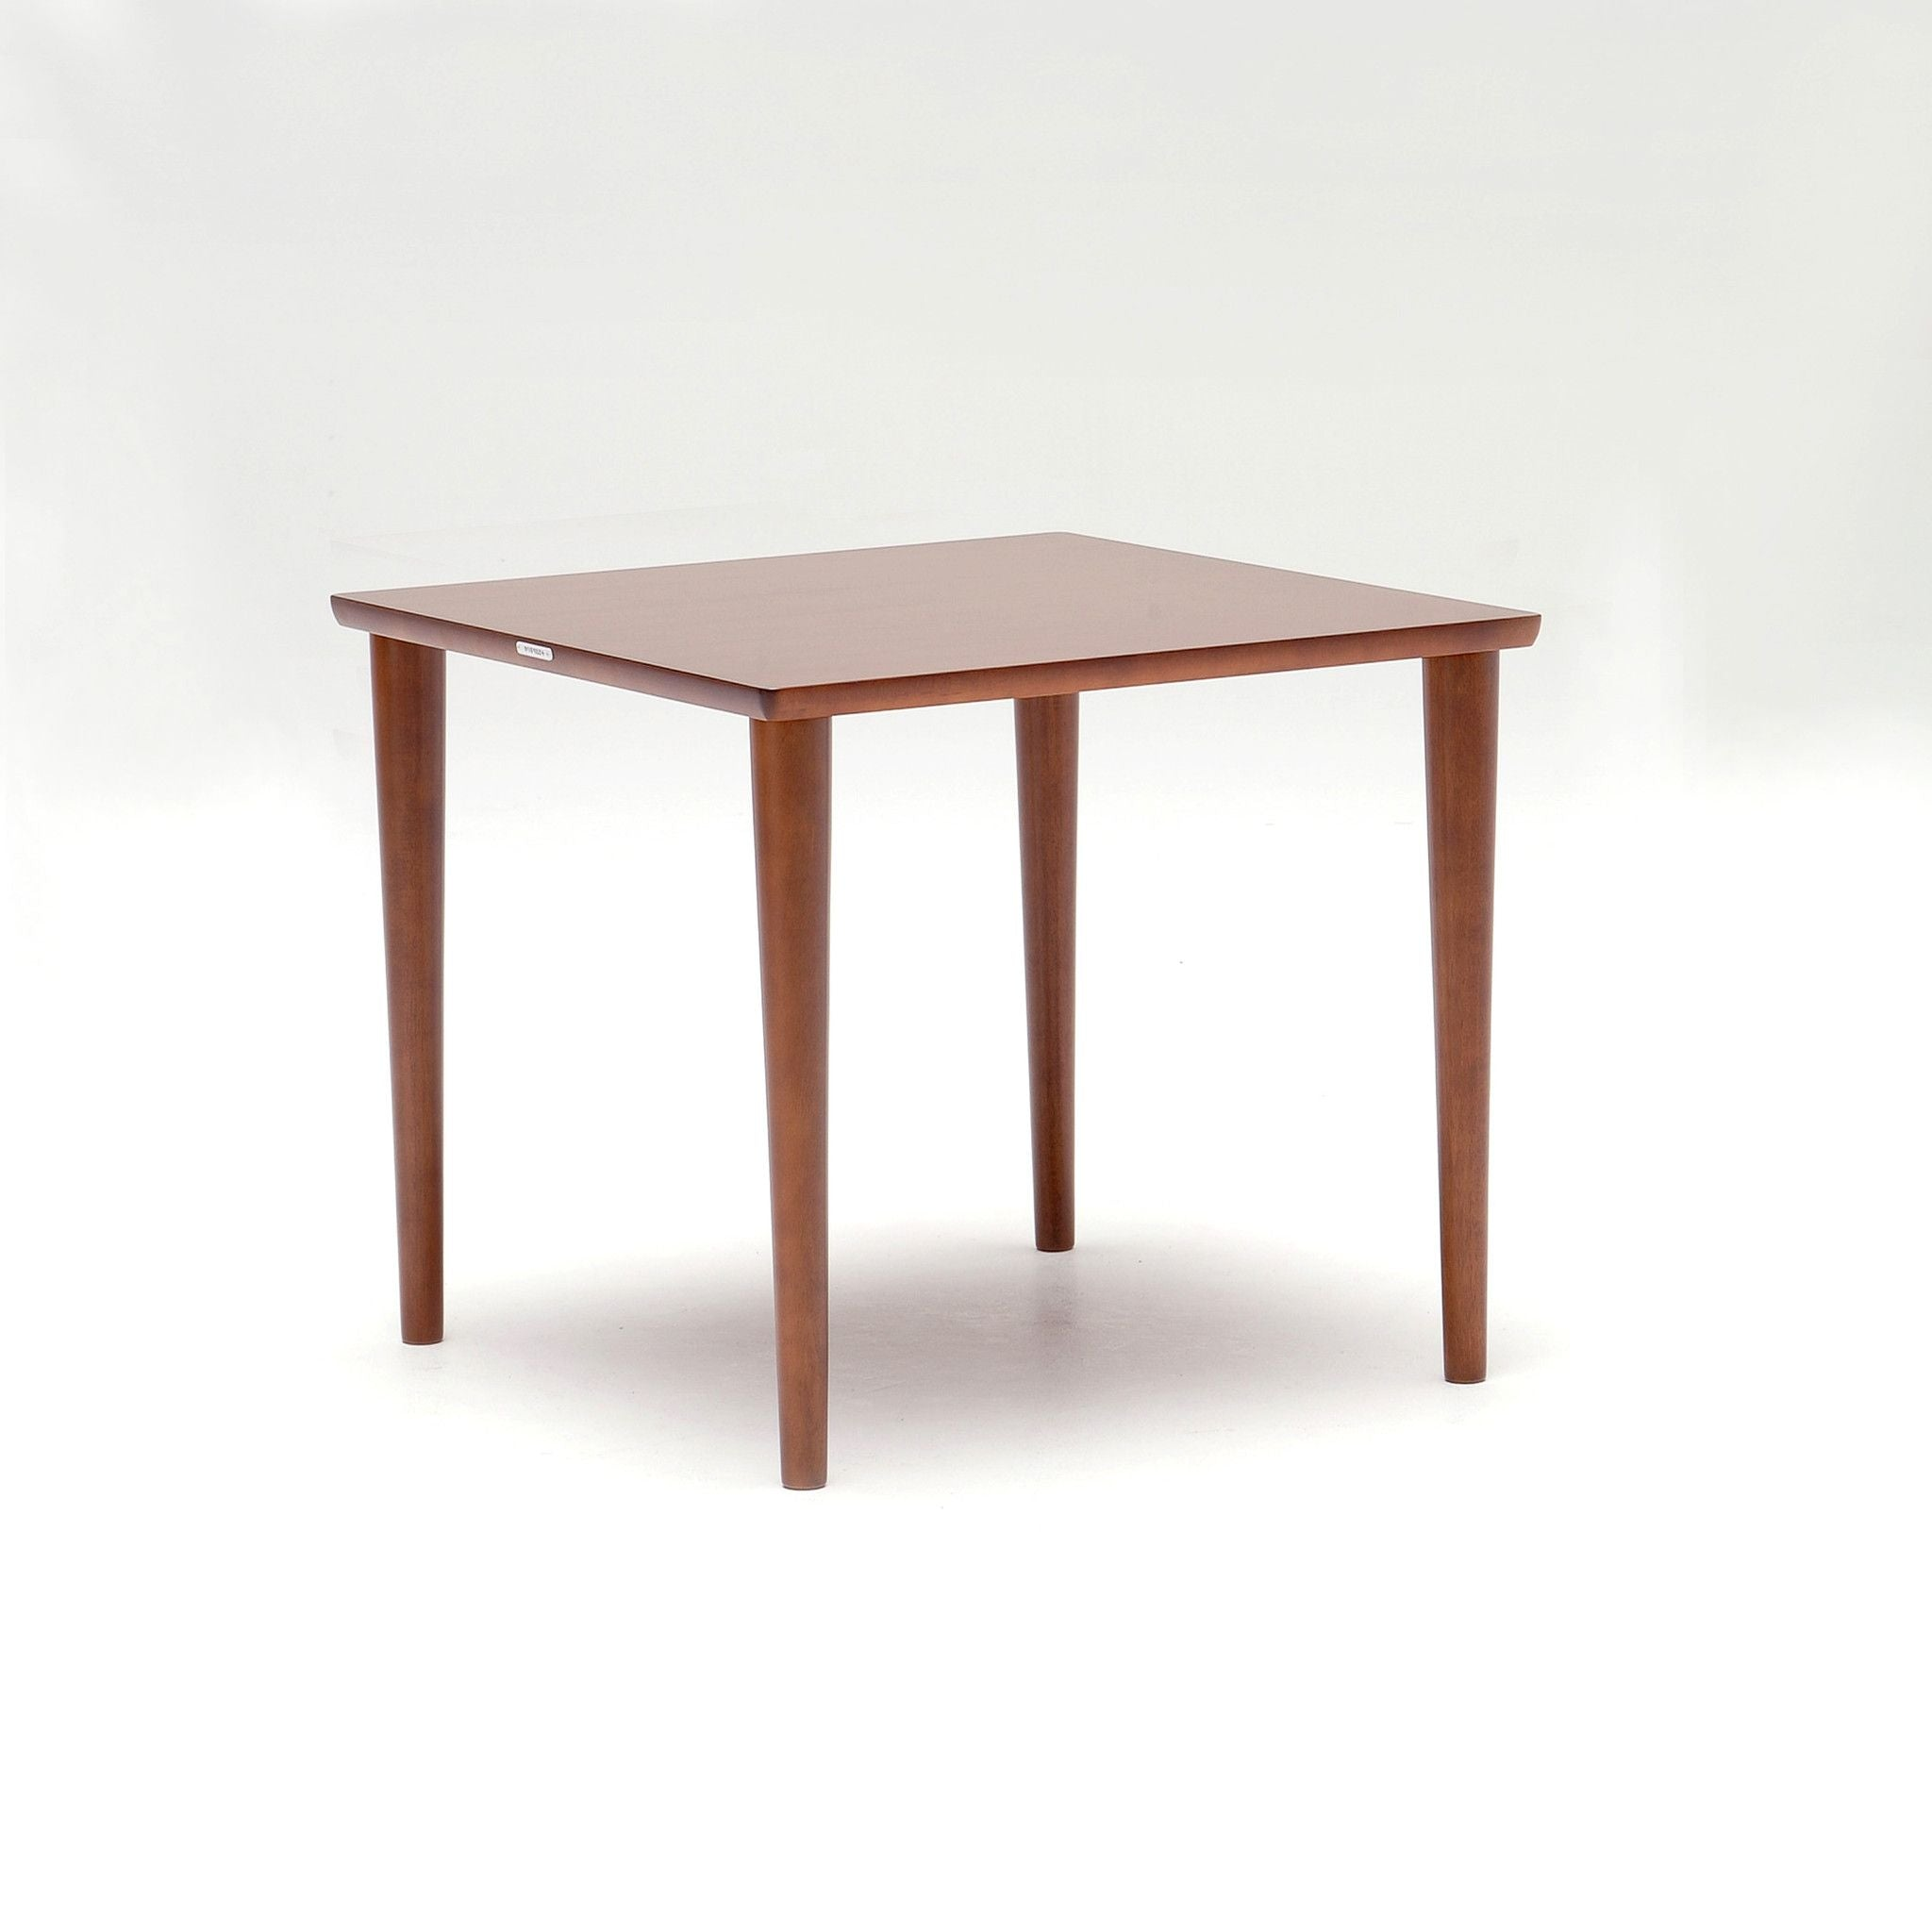 Karimoku60 - dining table 800 walnut - Dining Table